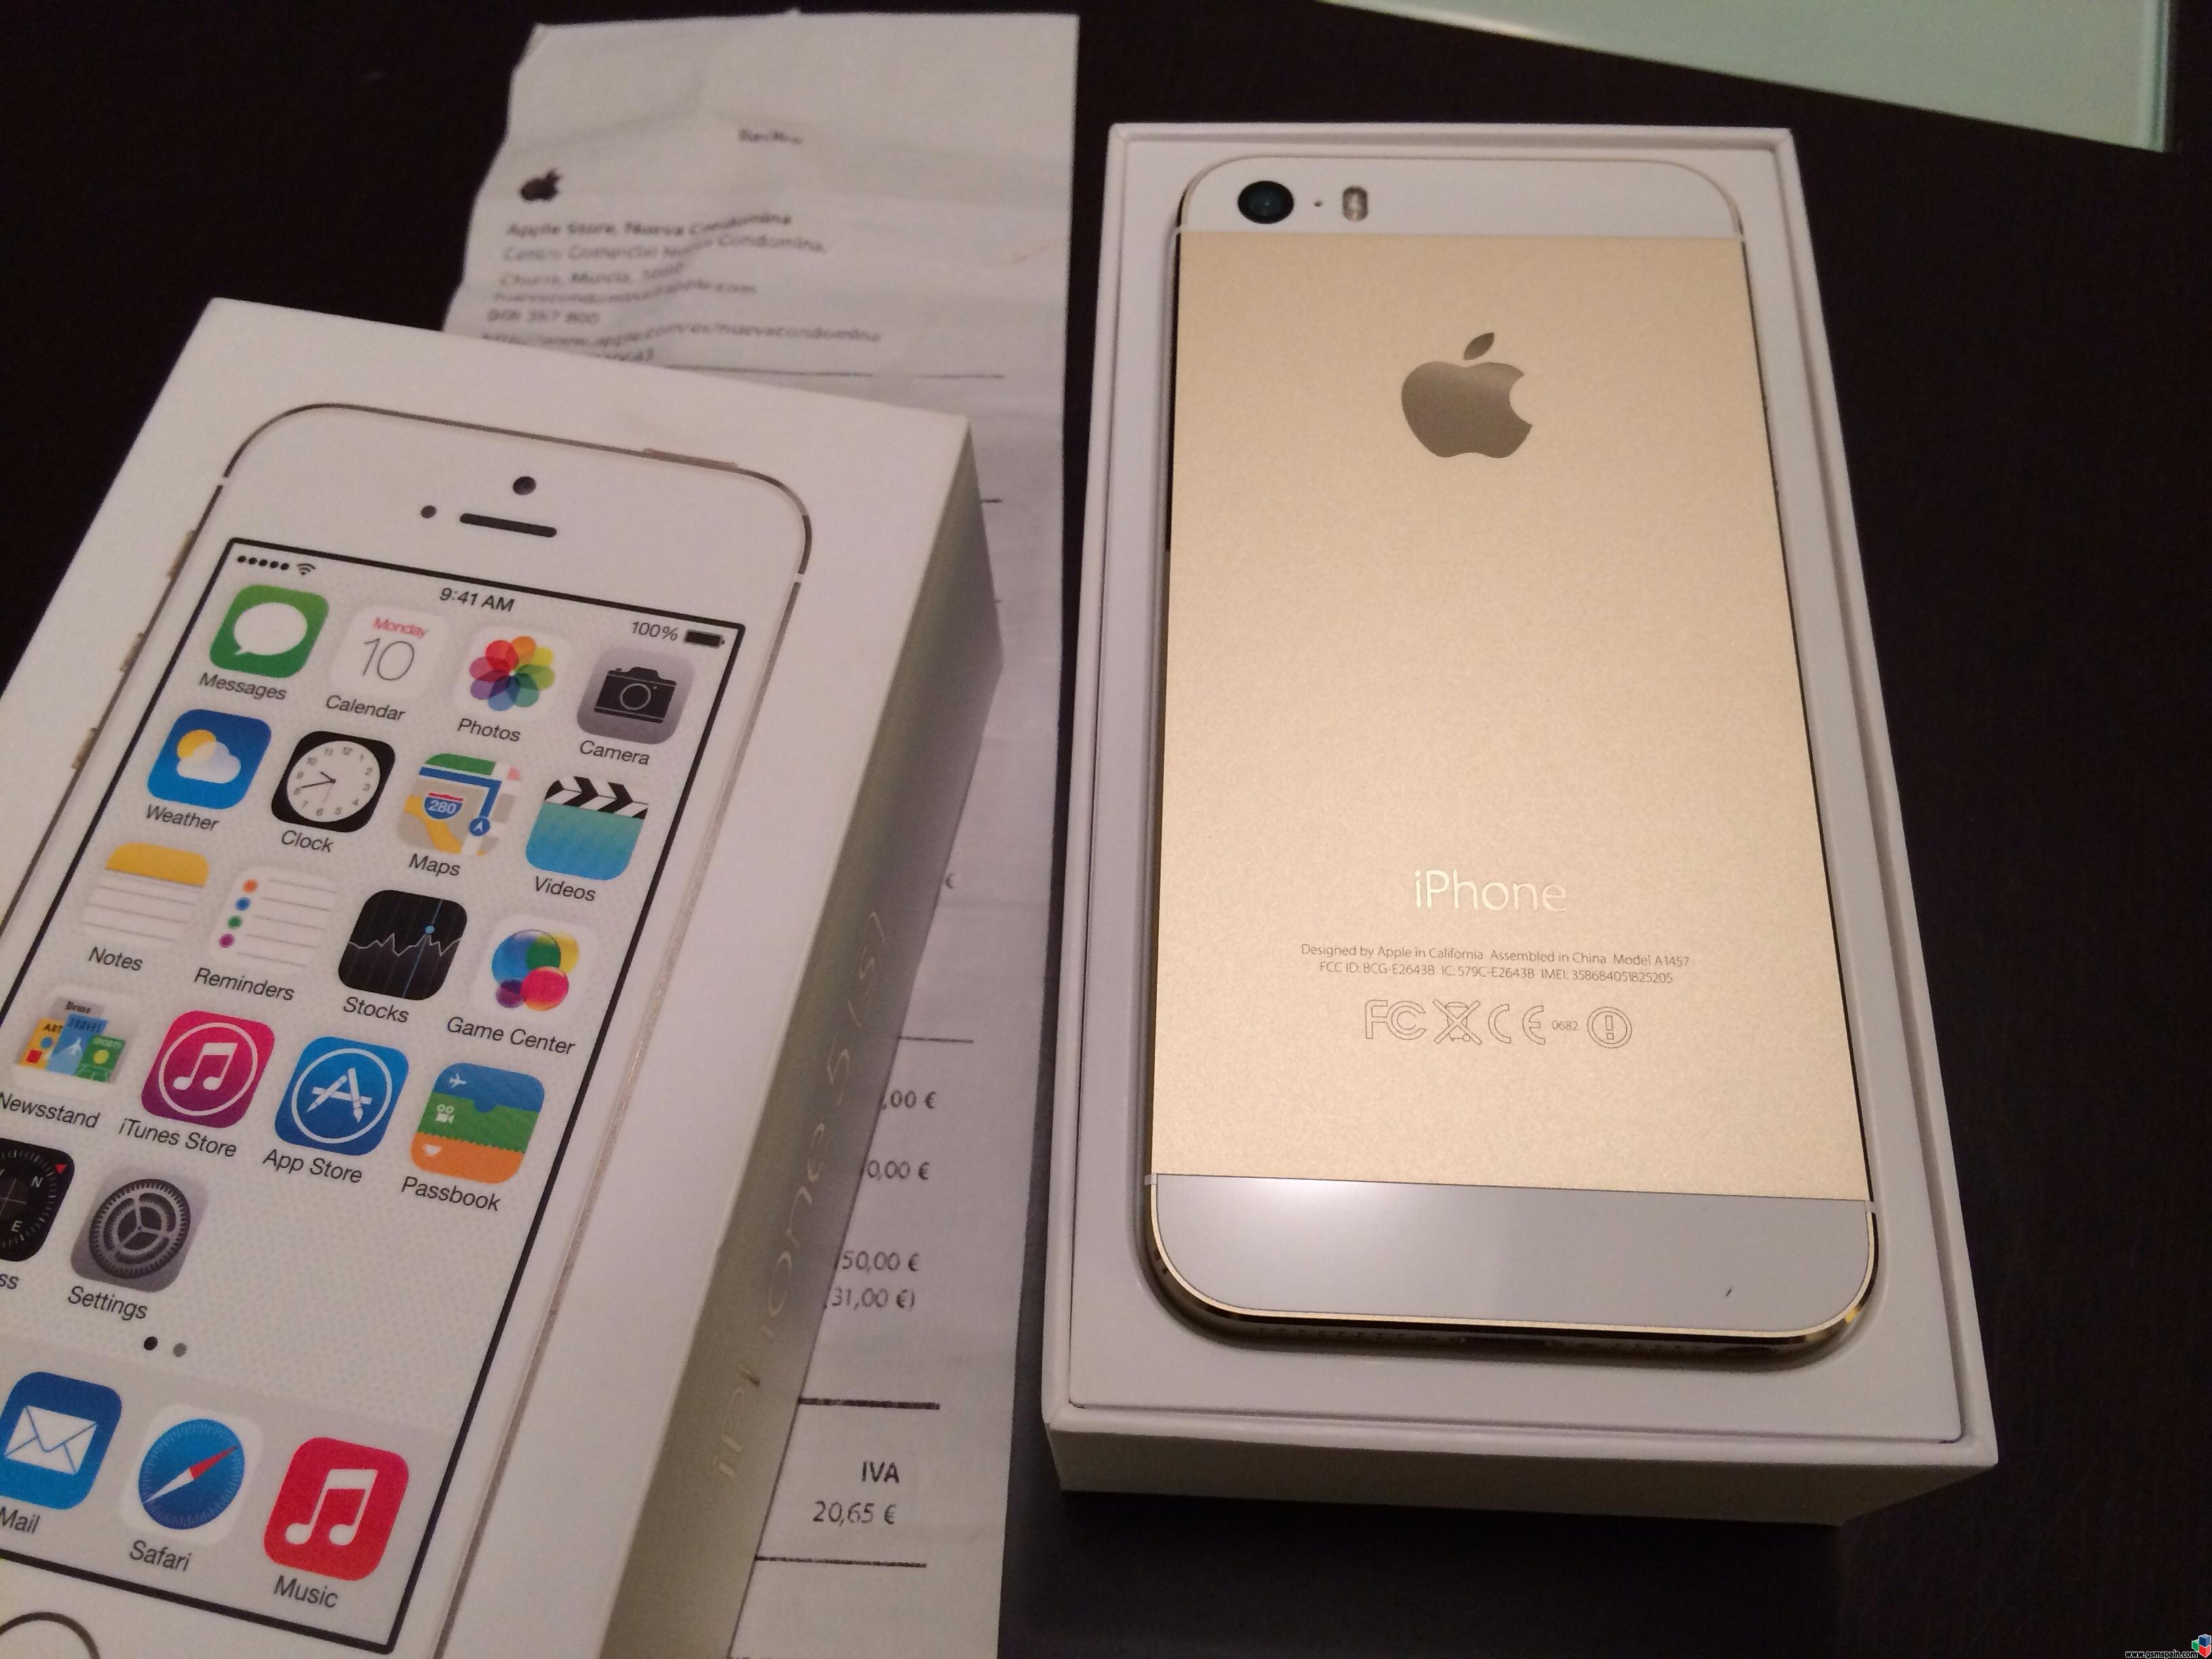 Iphone 5s Libre Nuevo Vendo Iphone 5s Gold 16 Gb Libre Con Ticket Applestore